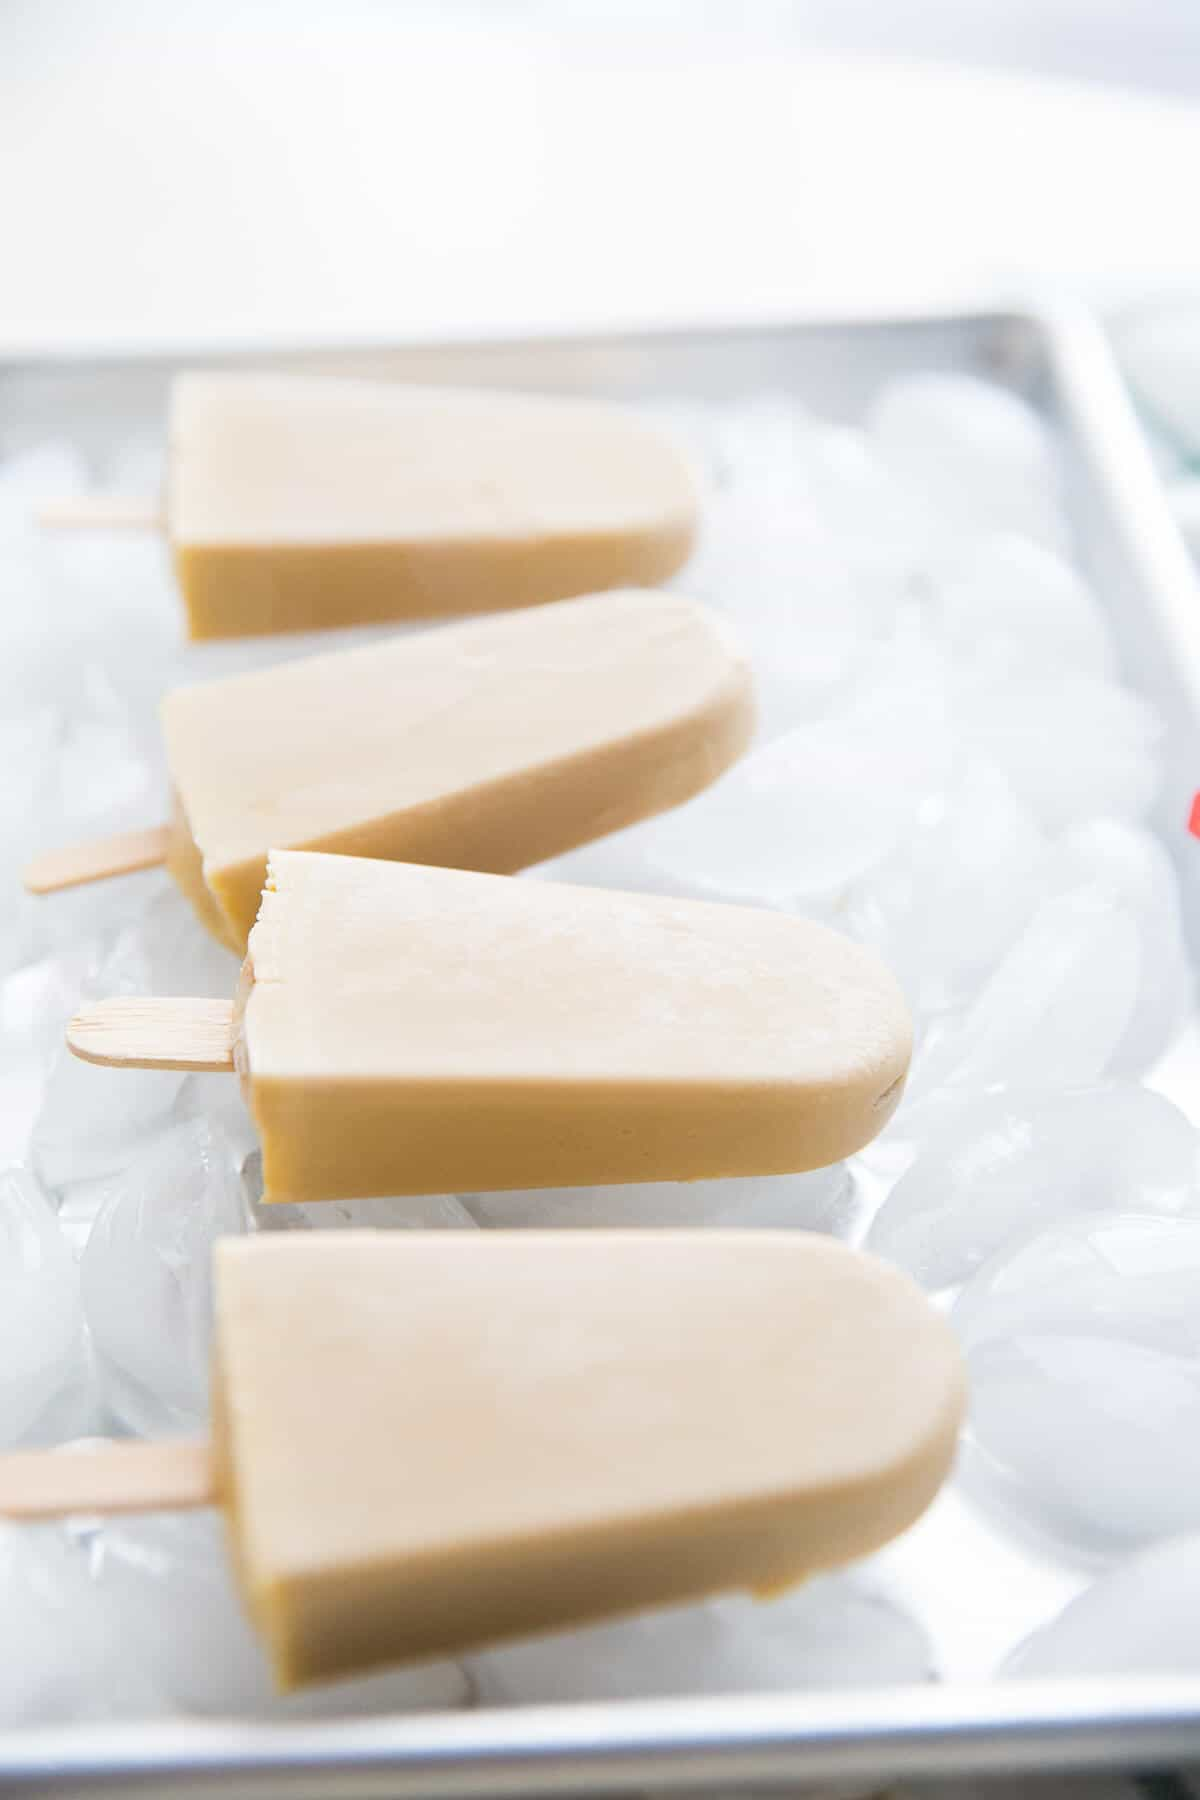 These Dirty Chai popsicles are ultra creamy and delicious! The perfect pick me up!